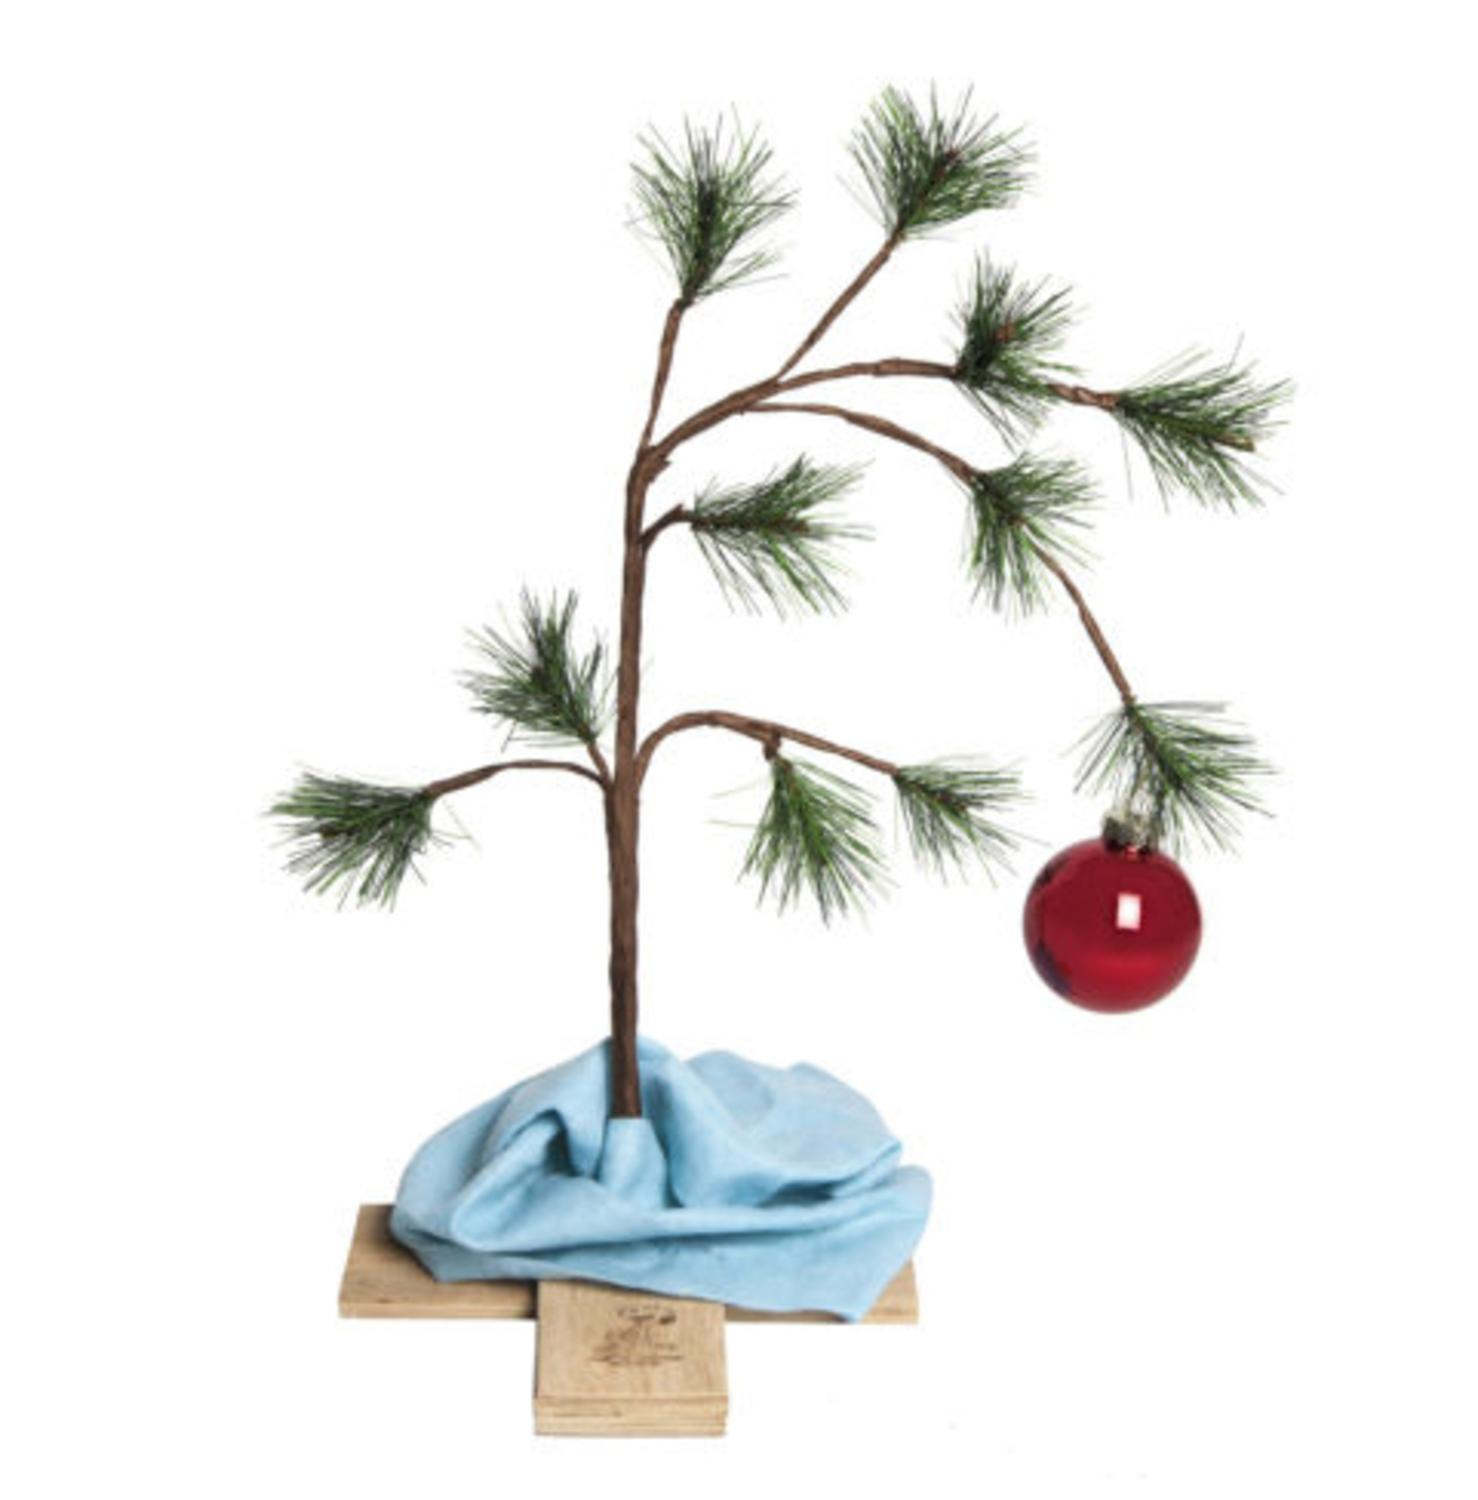 Product Works 2 ft. Original Charlie Brown Unlit Christmas Tree Decoration